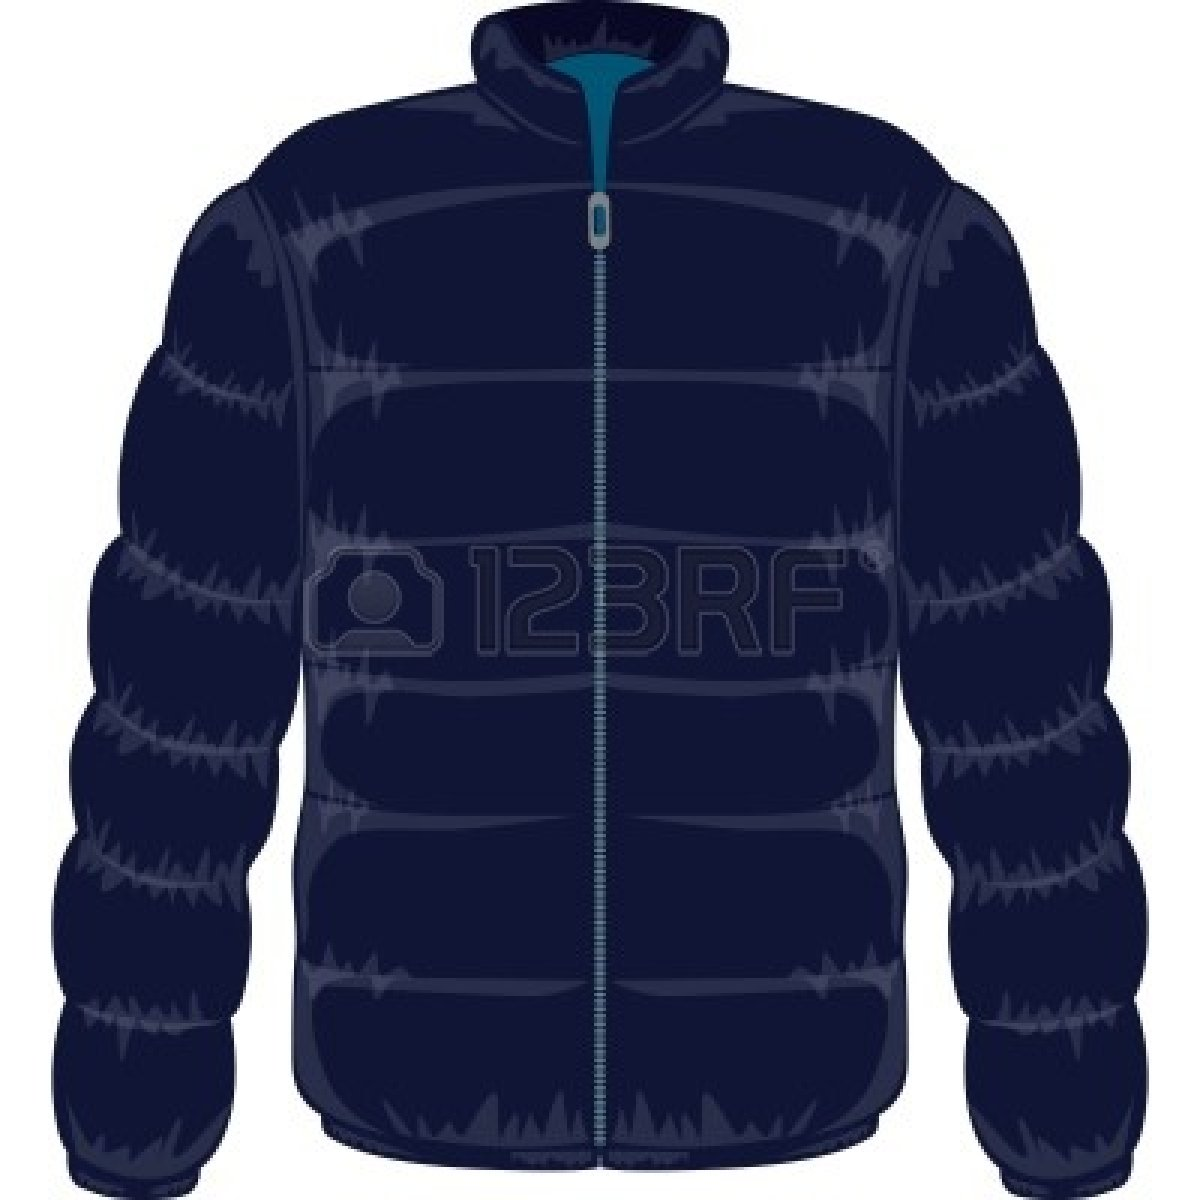 1200x1200 Coat Winter Jacket Clipart Free Images